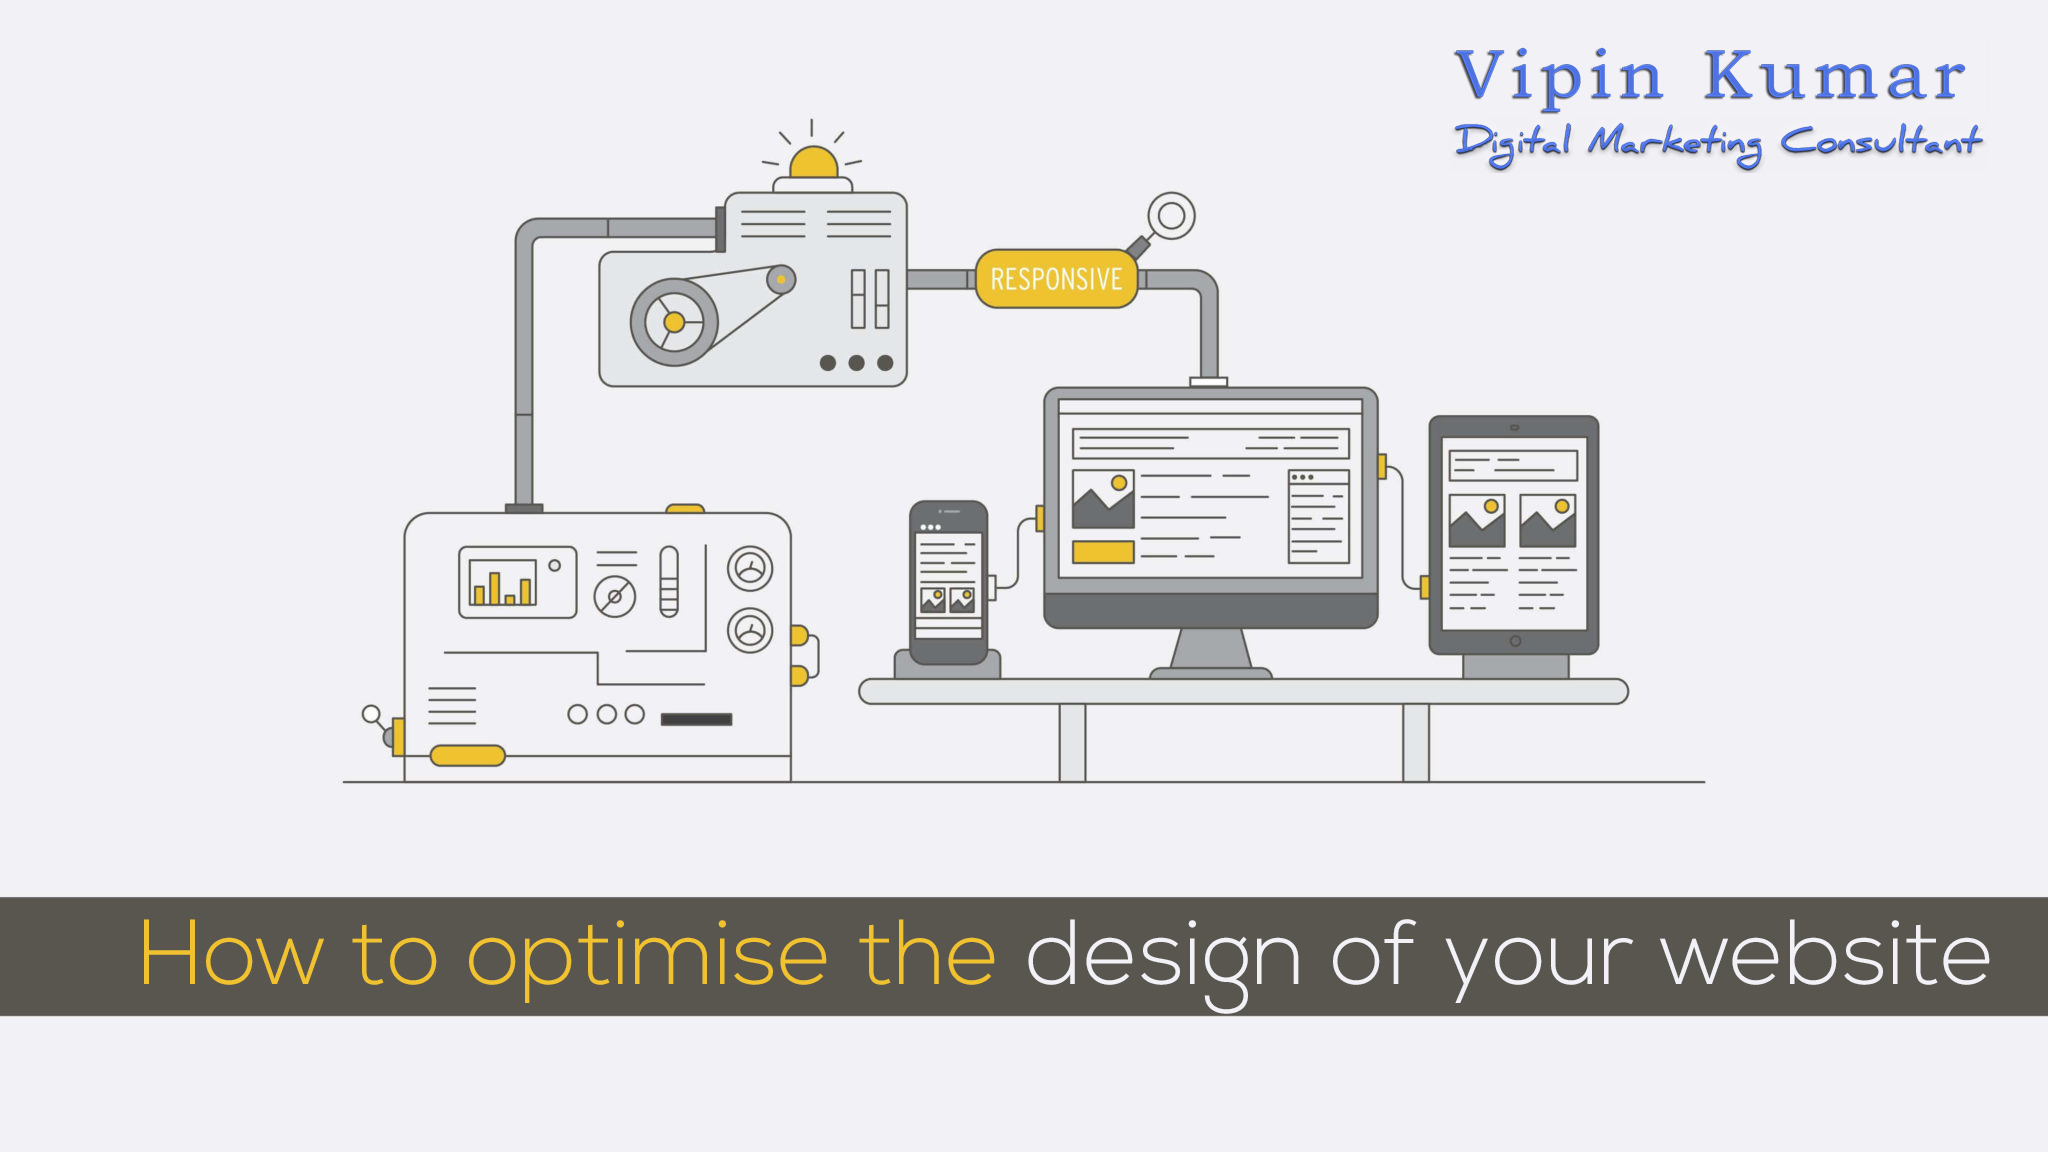 How to optimise the design of your website